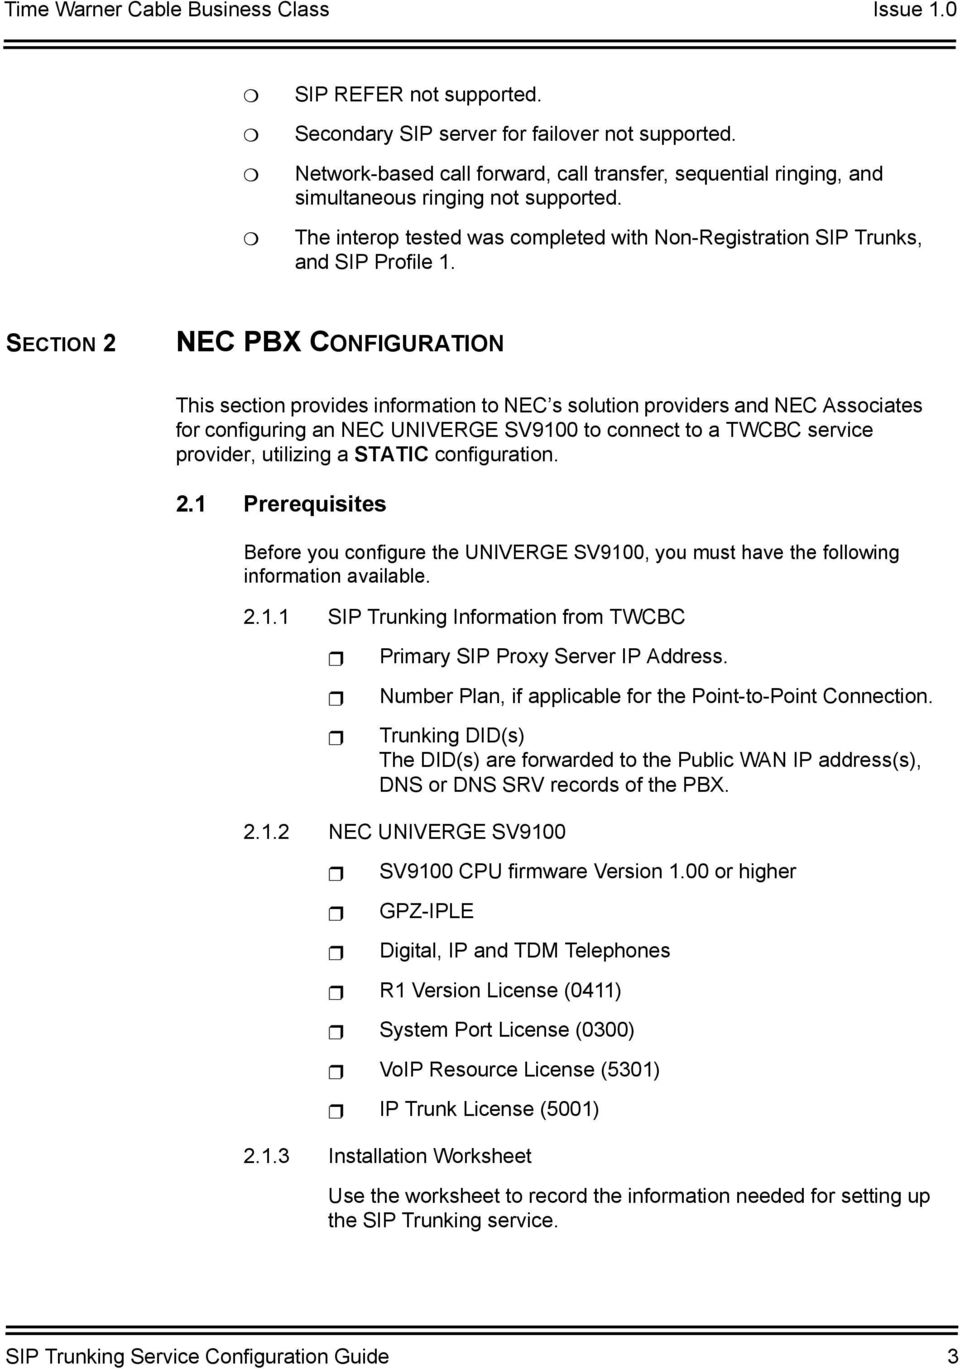 SECTION 2 NEC PBX CONFIGURATION This section provides information to NEC s solution providers and NEC Associates for configuring an NEC UNIVERGE SV9100 to connect to a TWCBC service provider,